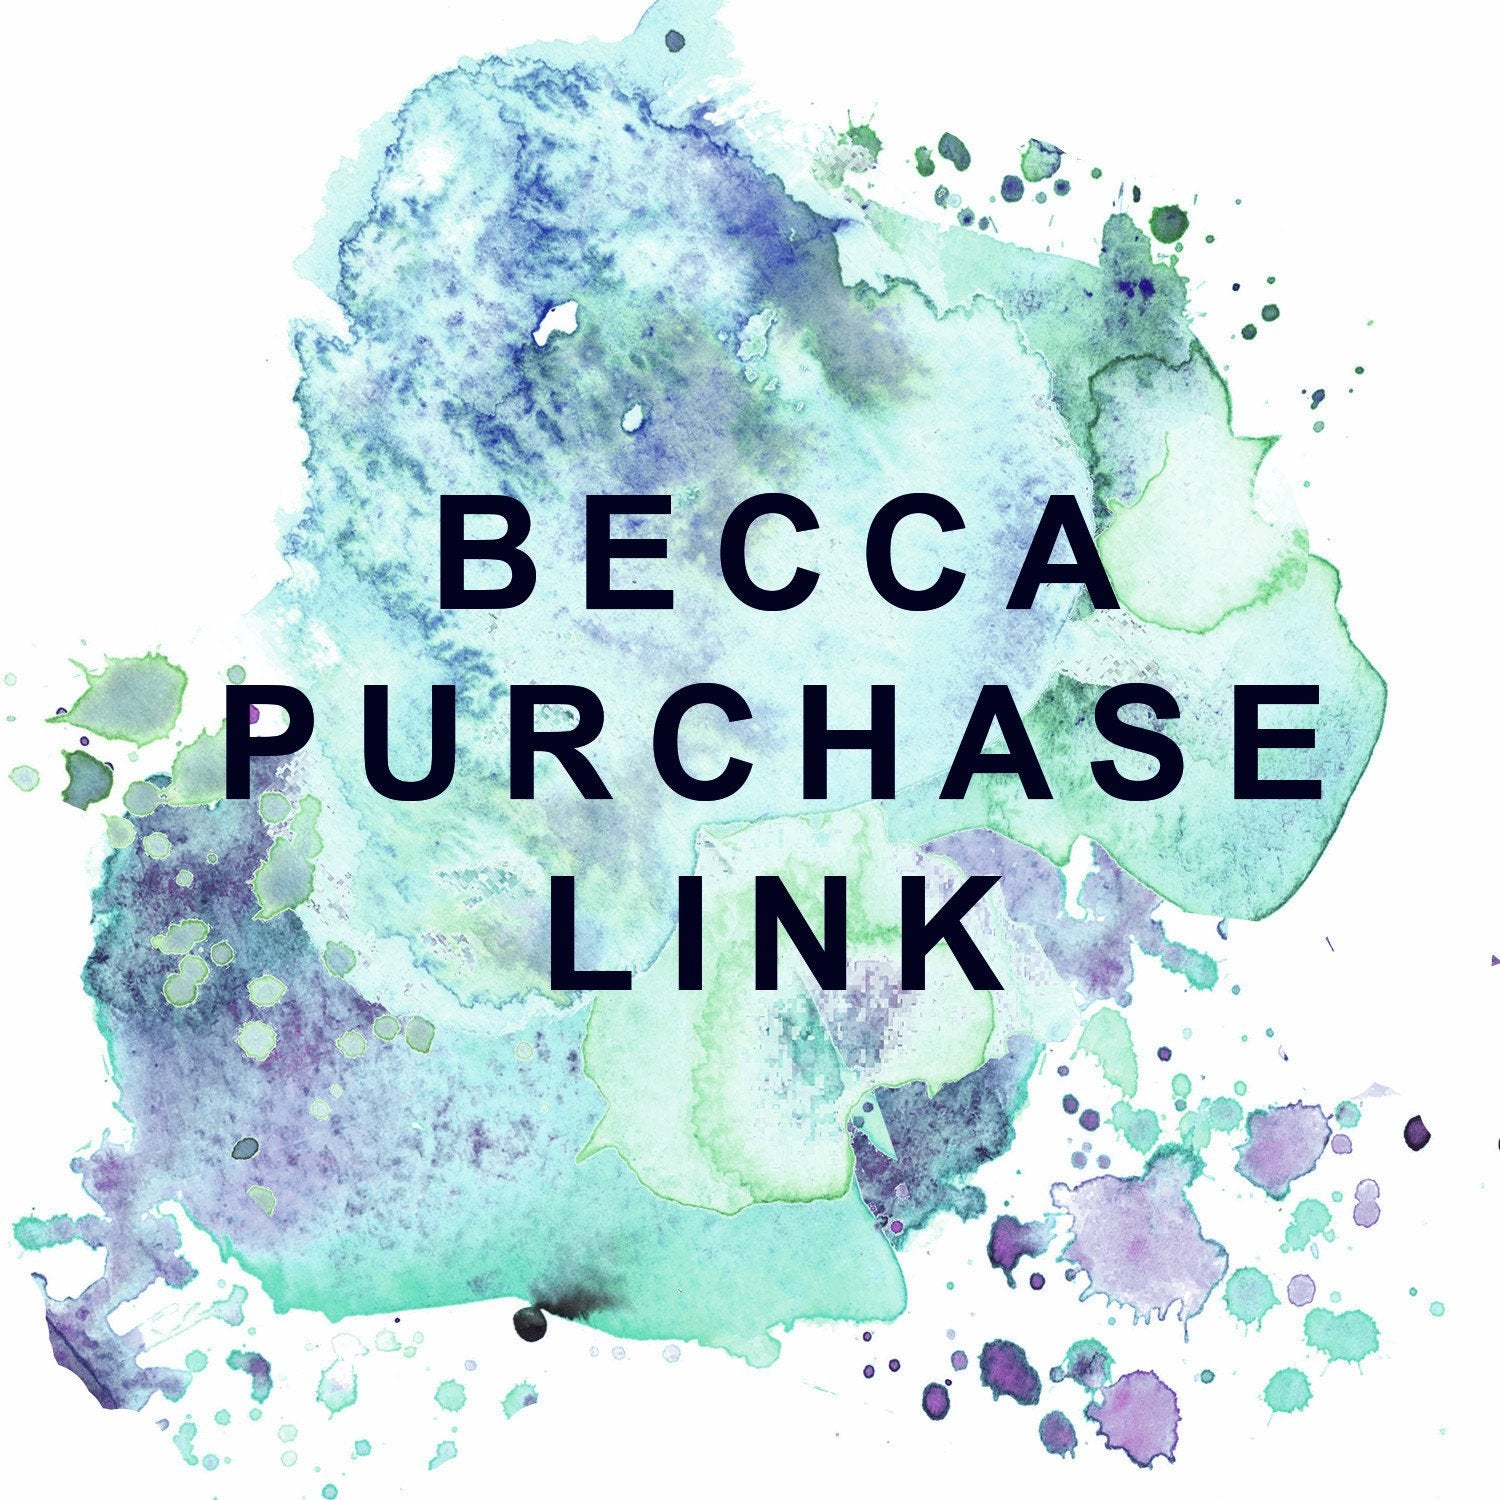 Purchase Link for Becca